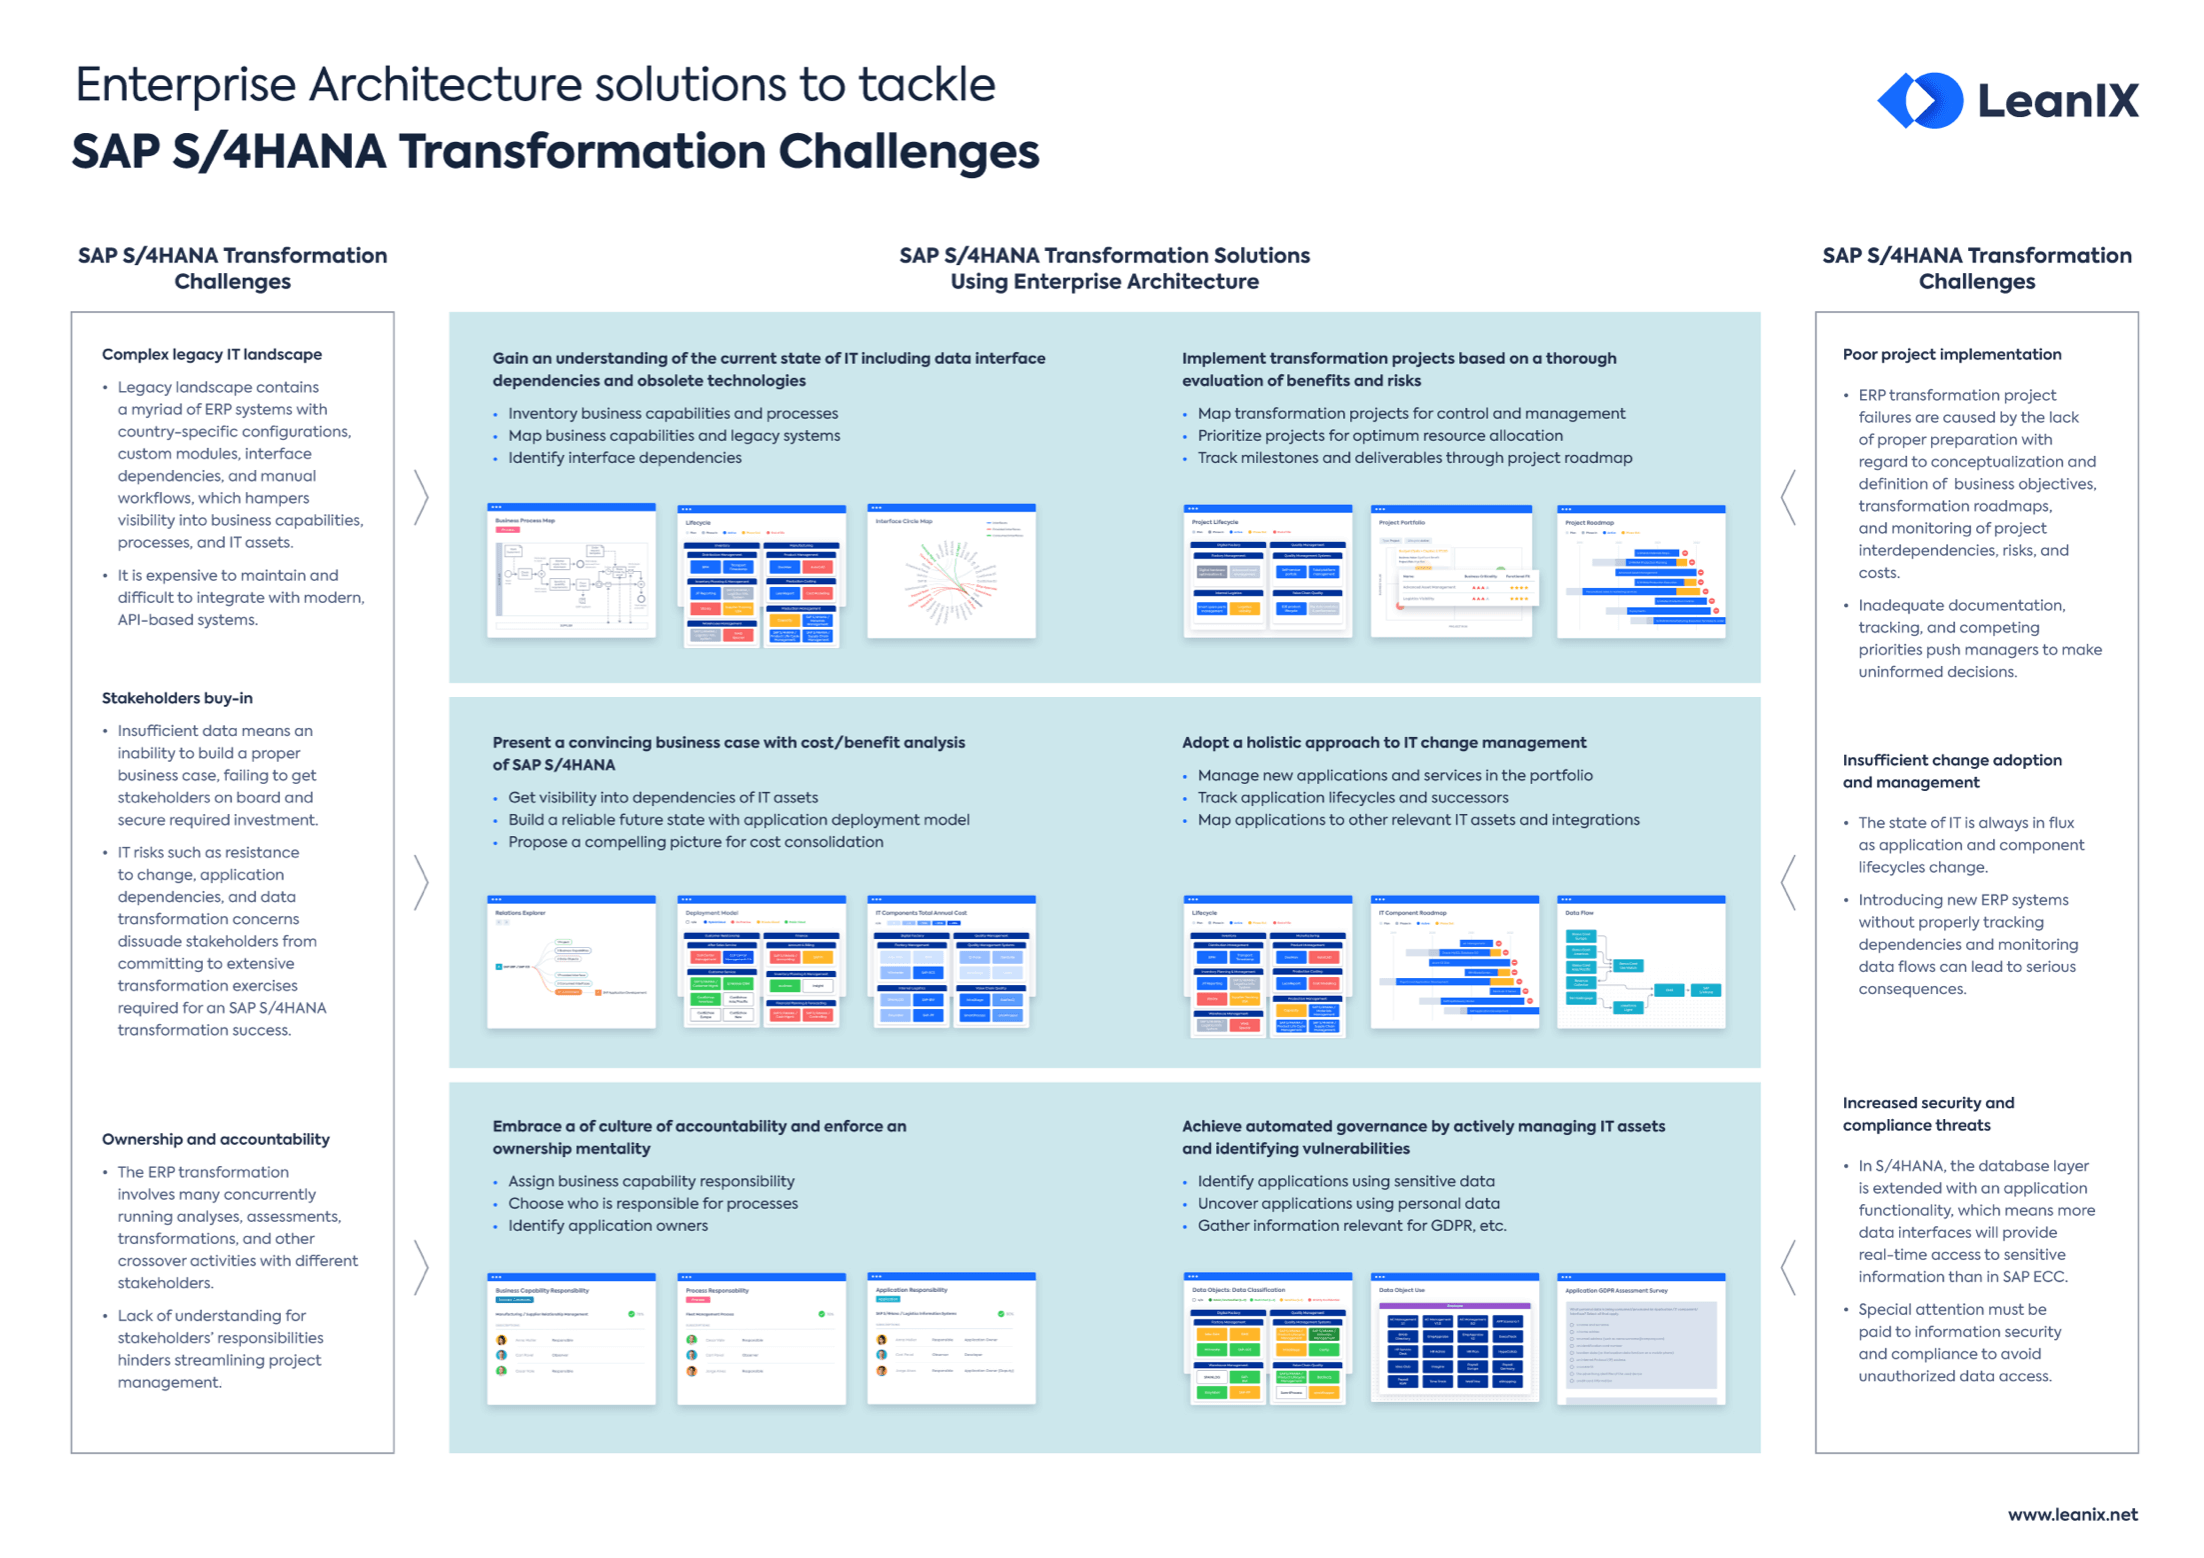 EN-S4Hana-Challenges-Poster_Landing_Page_Preview